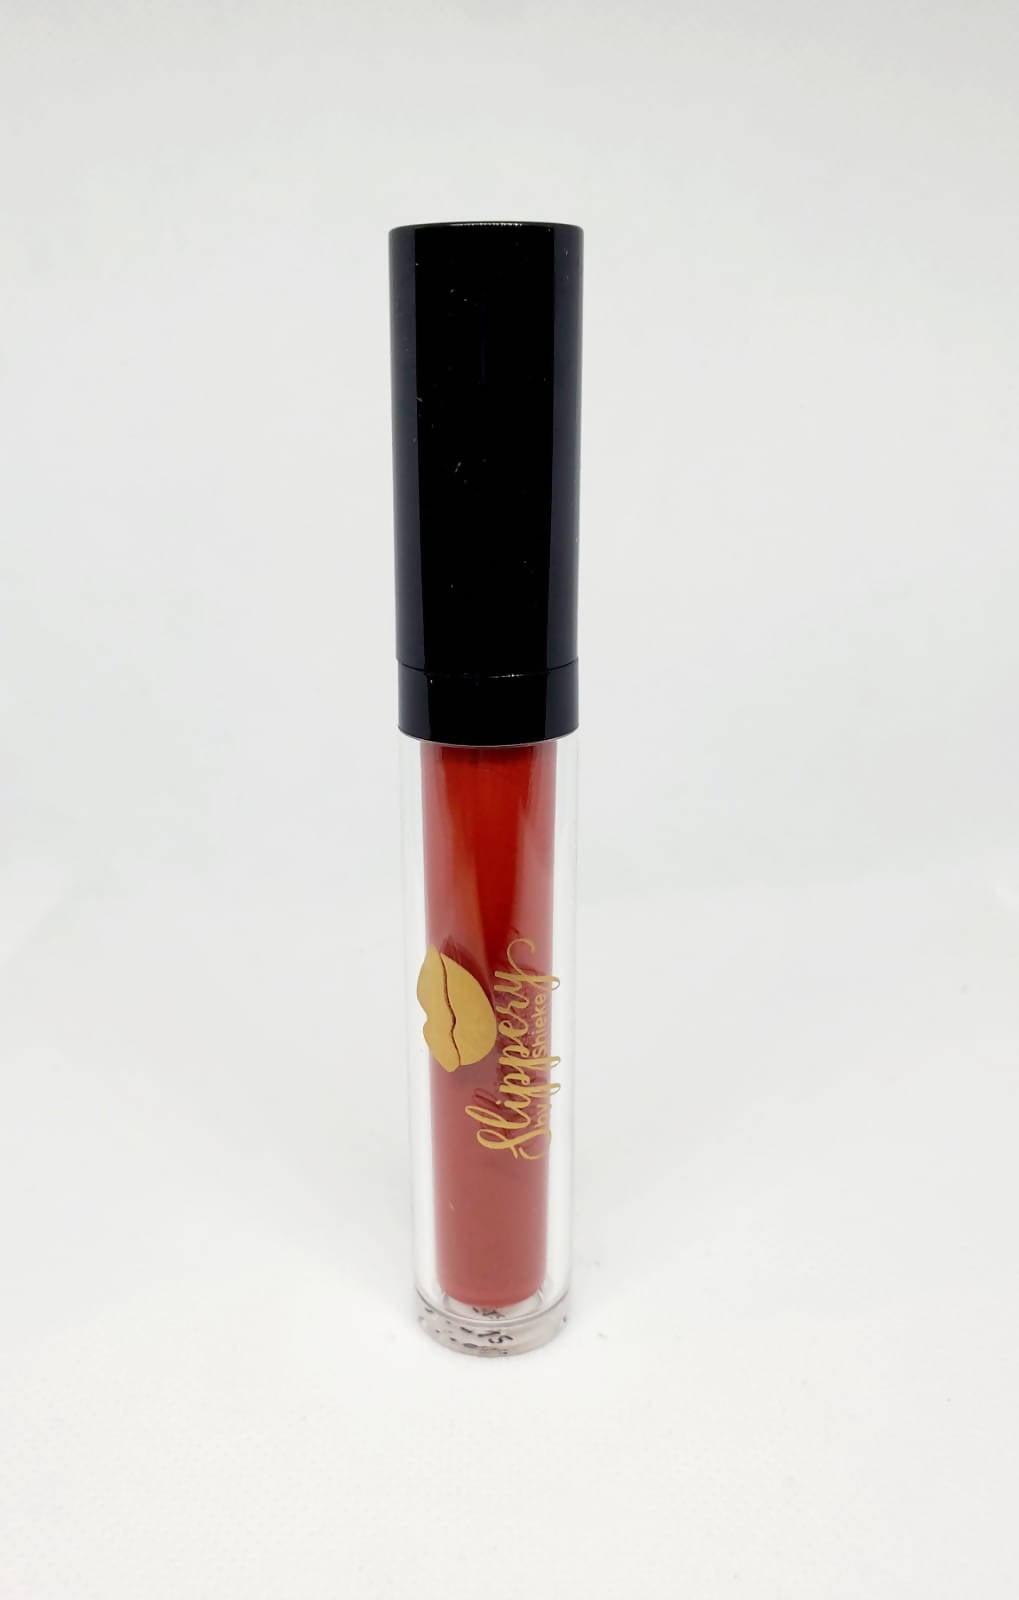 Slippery by Shieke Facetime Lip Shine Gloss